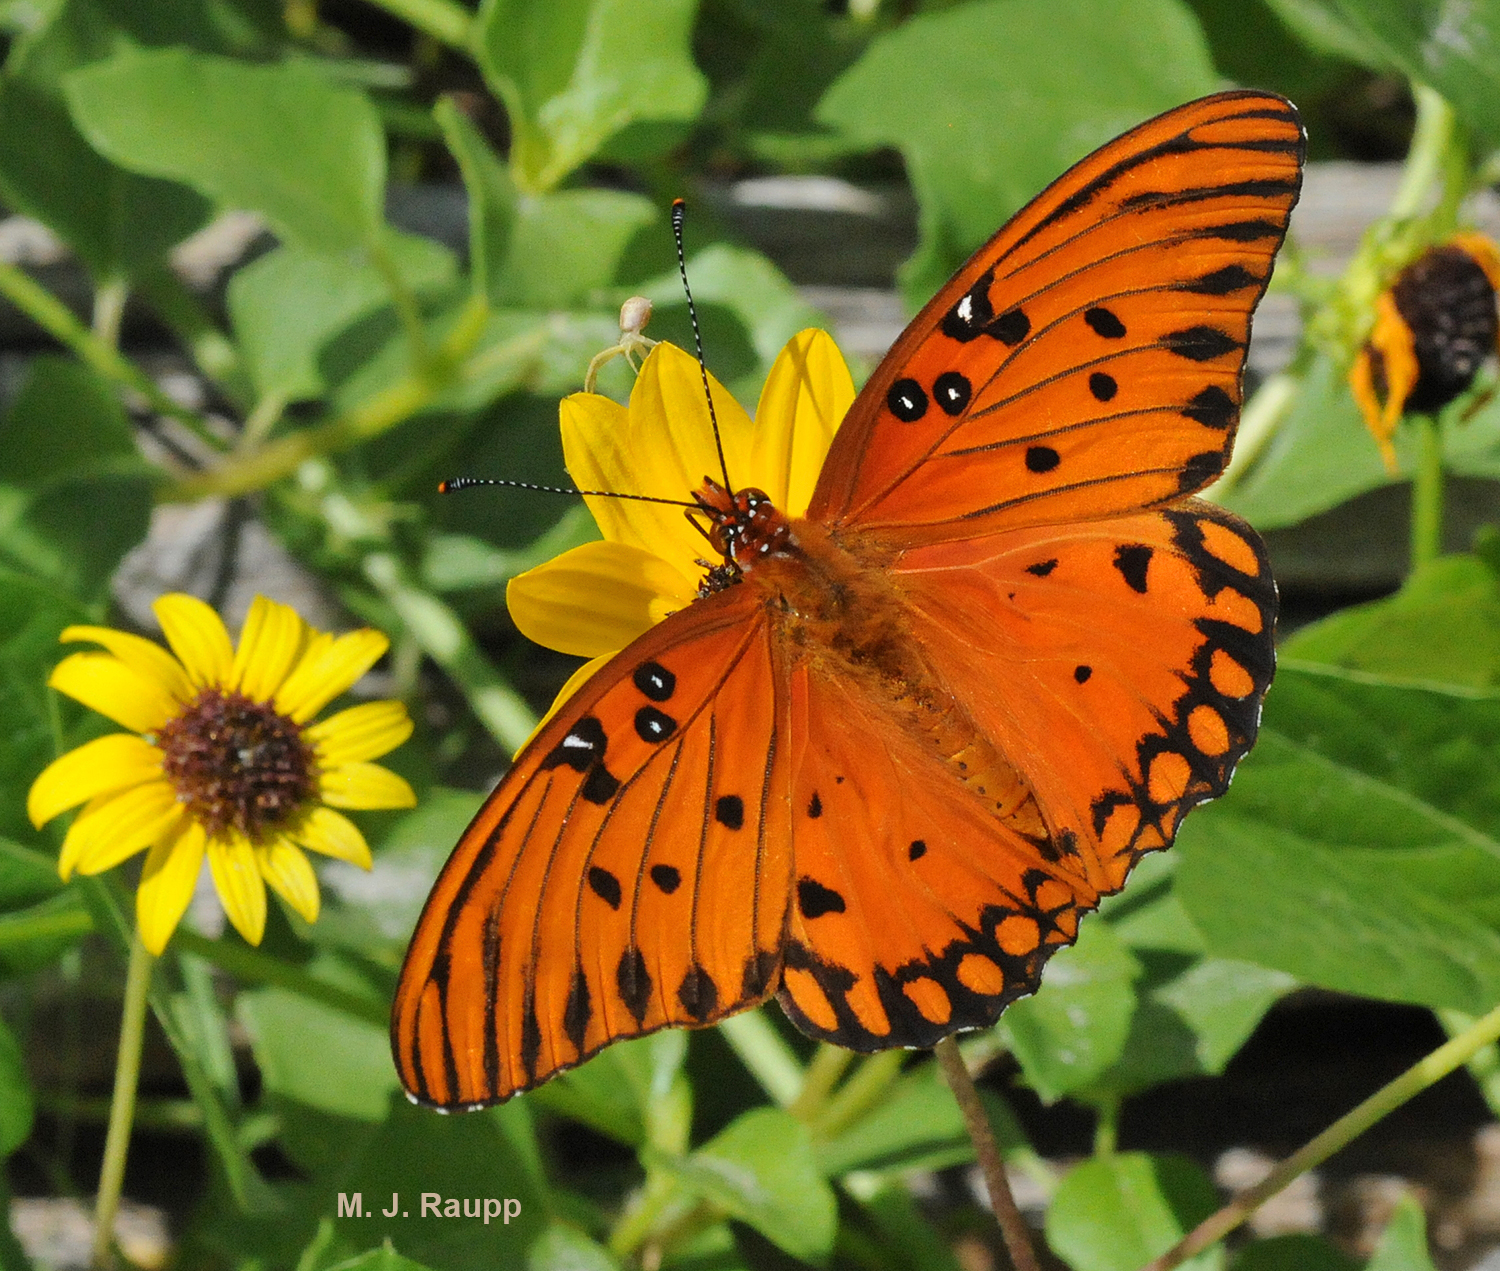 The gorgeous Gulf fritillary butterfly harbors a couple of unpleasant surprises for any would-be predator.